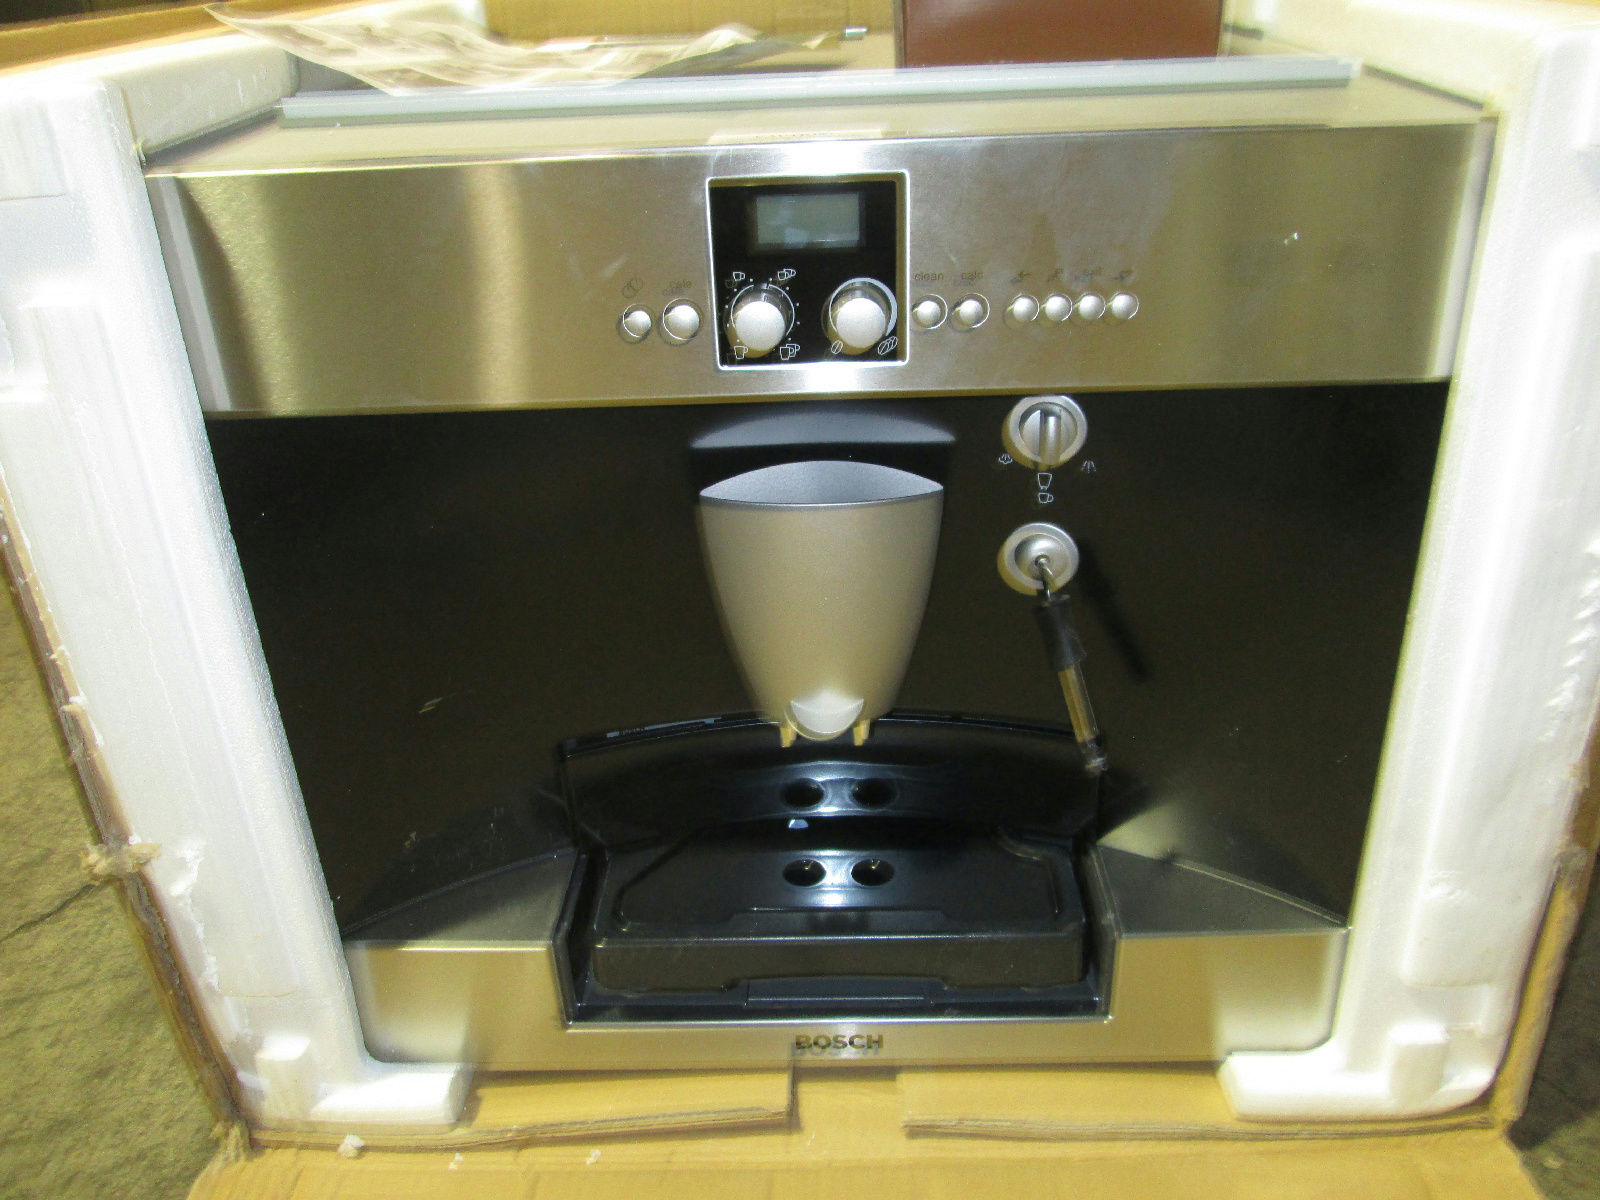 Built In Coffee Maker Bosch : Bosch TKN68E75UC Benvenuto Series Fully Automatic Built in Coffee Machine USD 2050 eBay